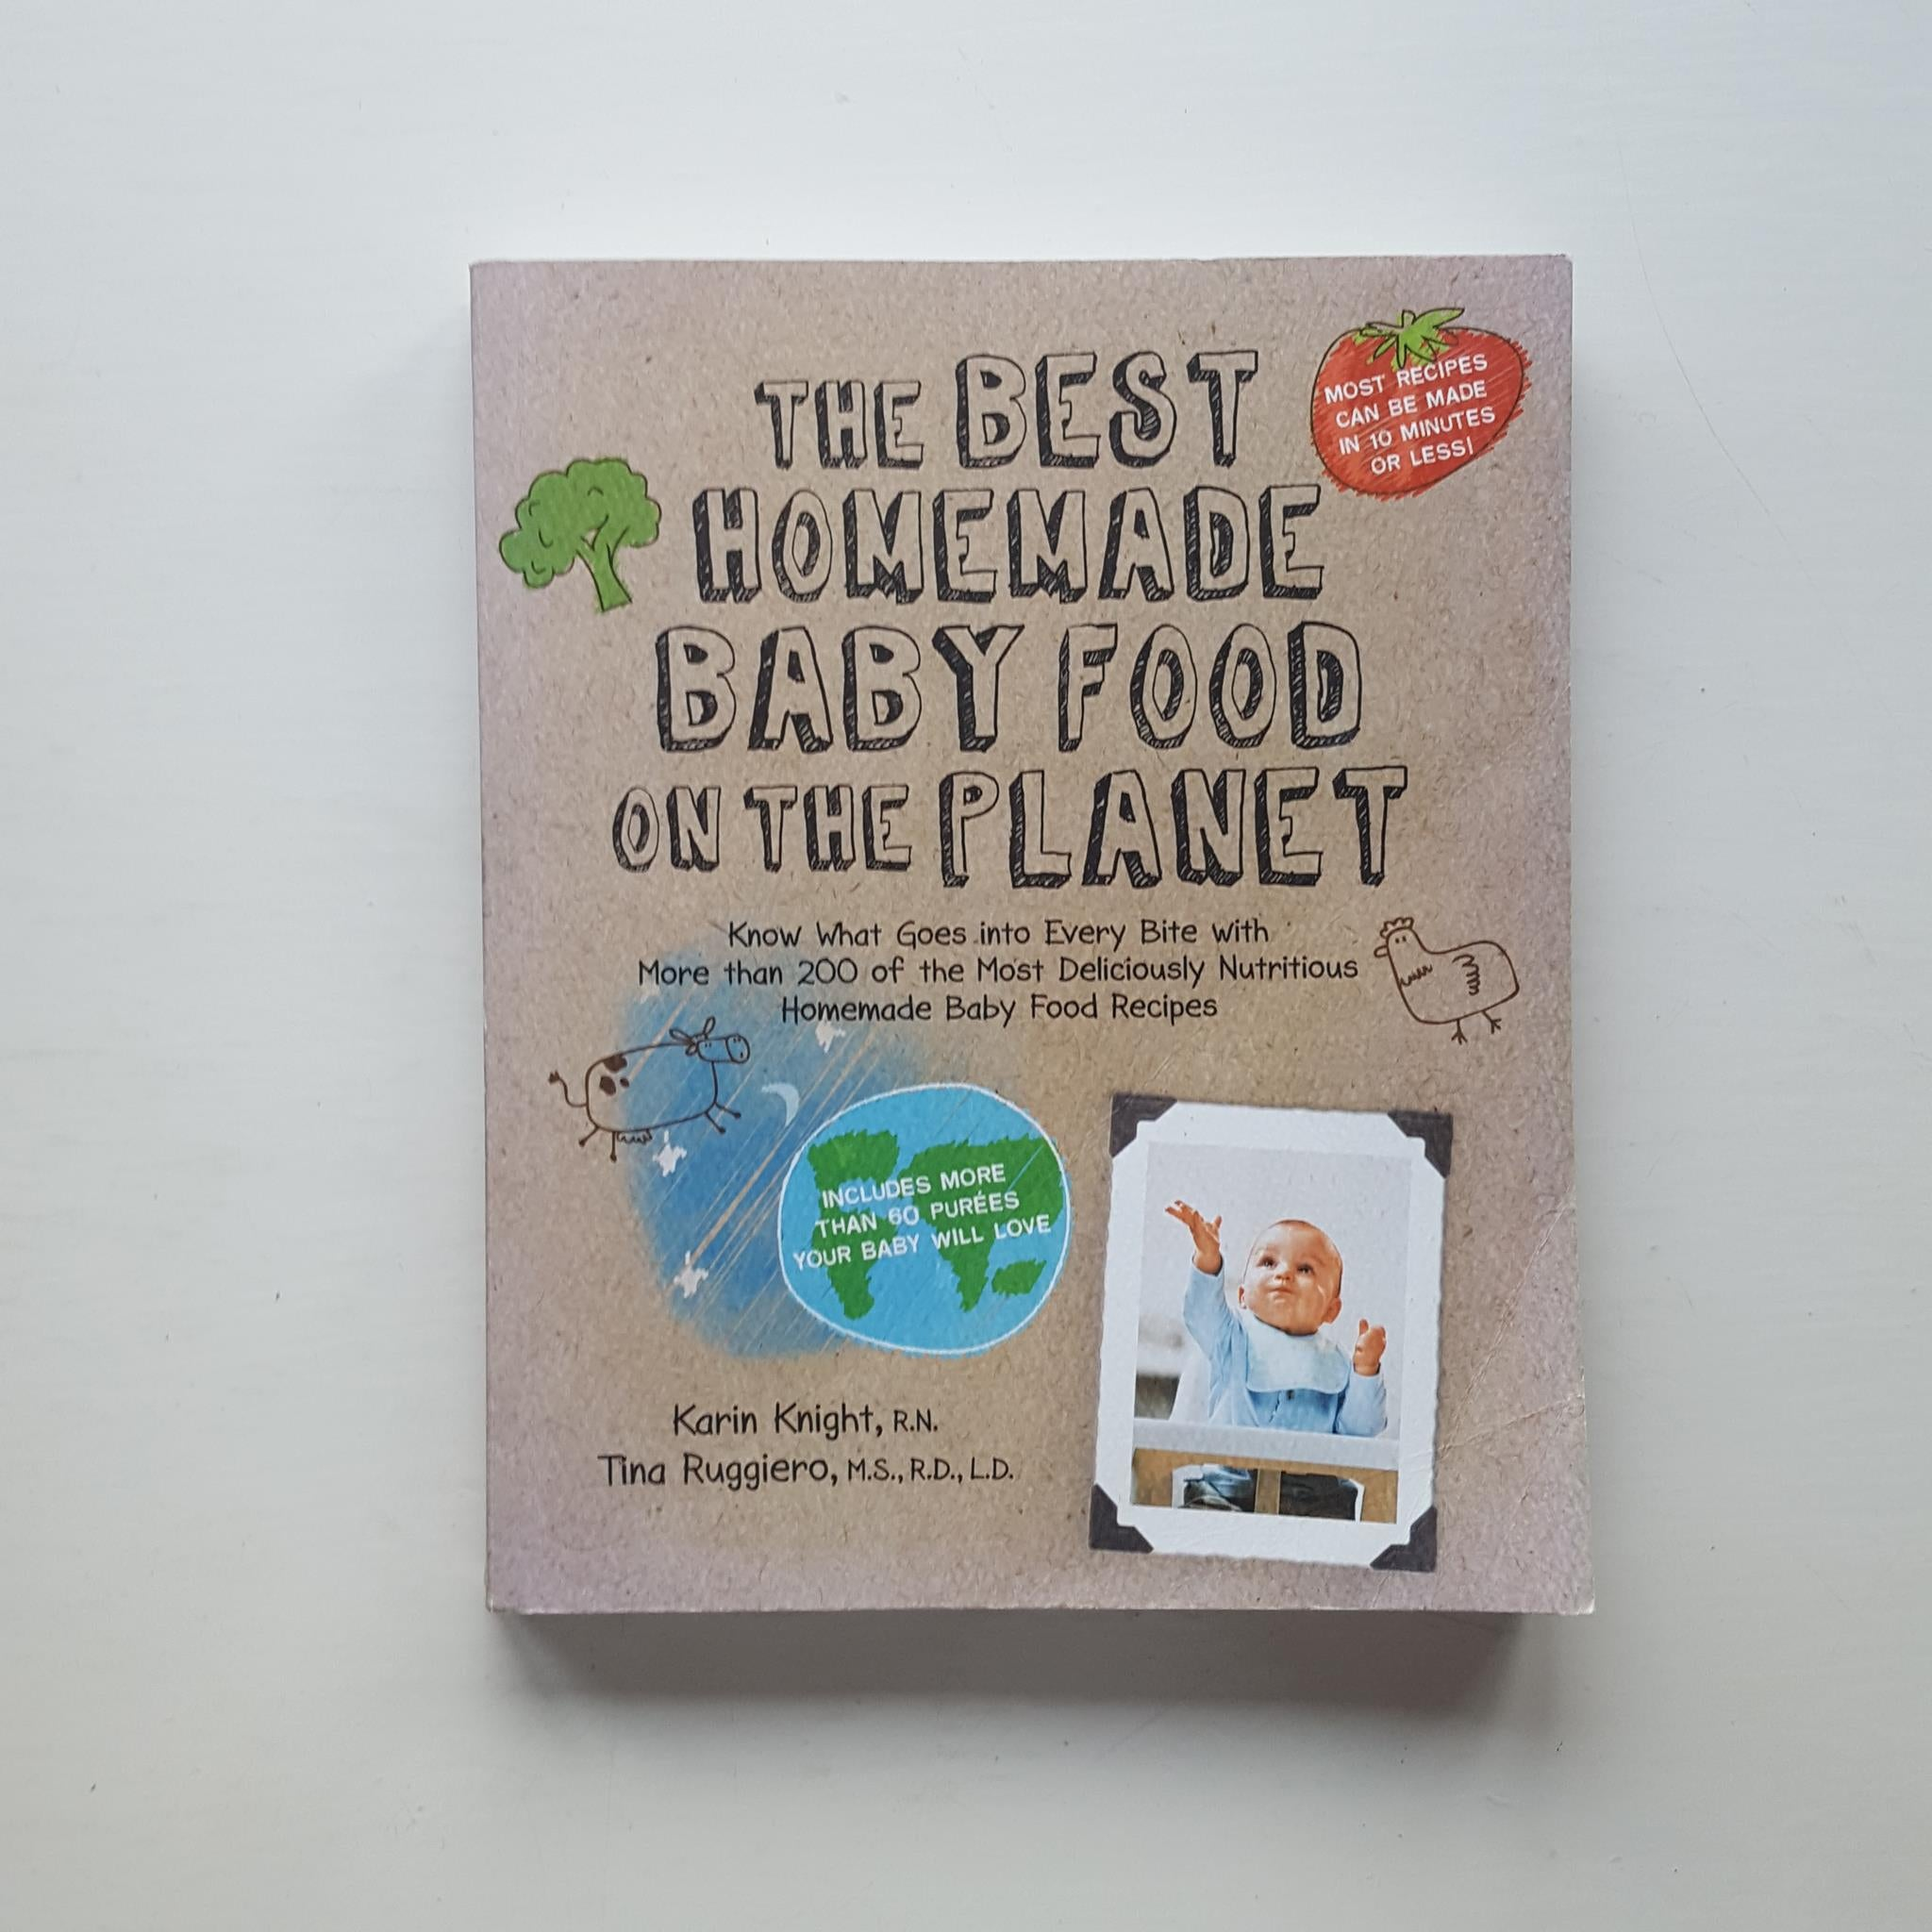 The Best Homemade Baby Food on the Planet by Karin Knight and Tina Ruggiero